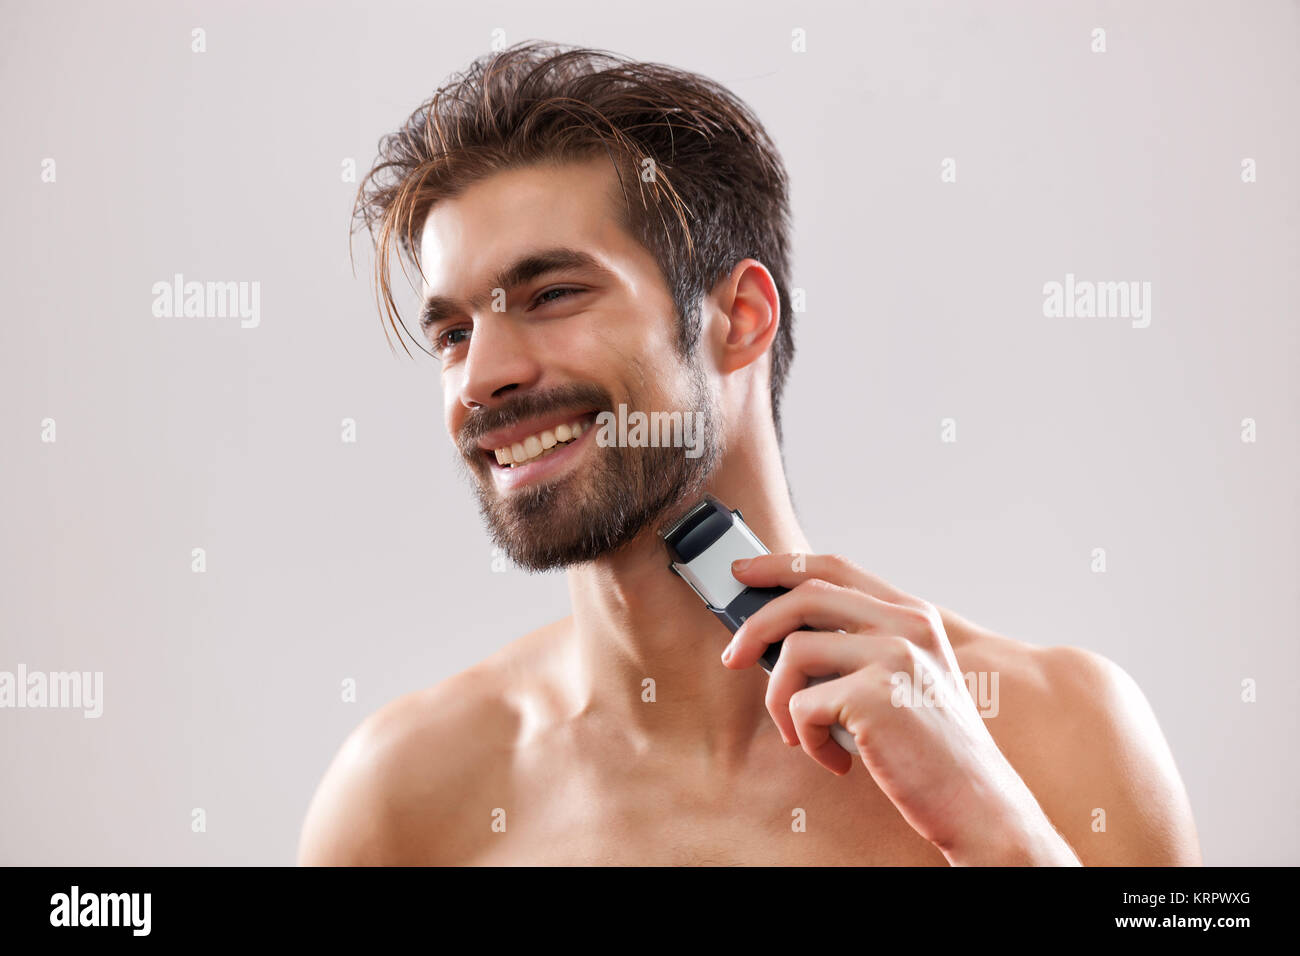 Young man is shaving his beard with electric razor. - Stock Image